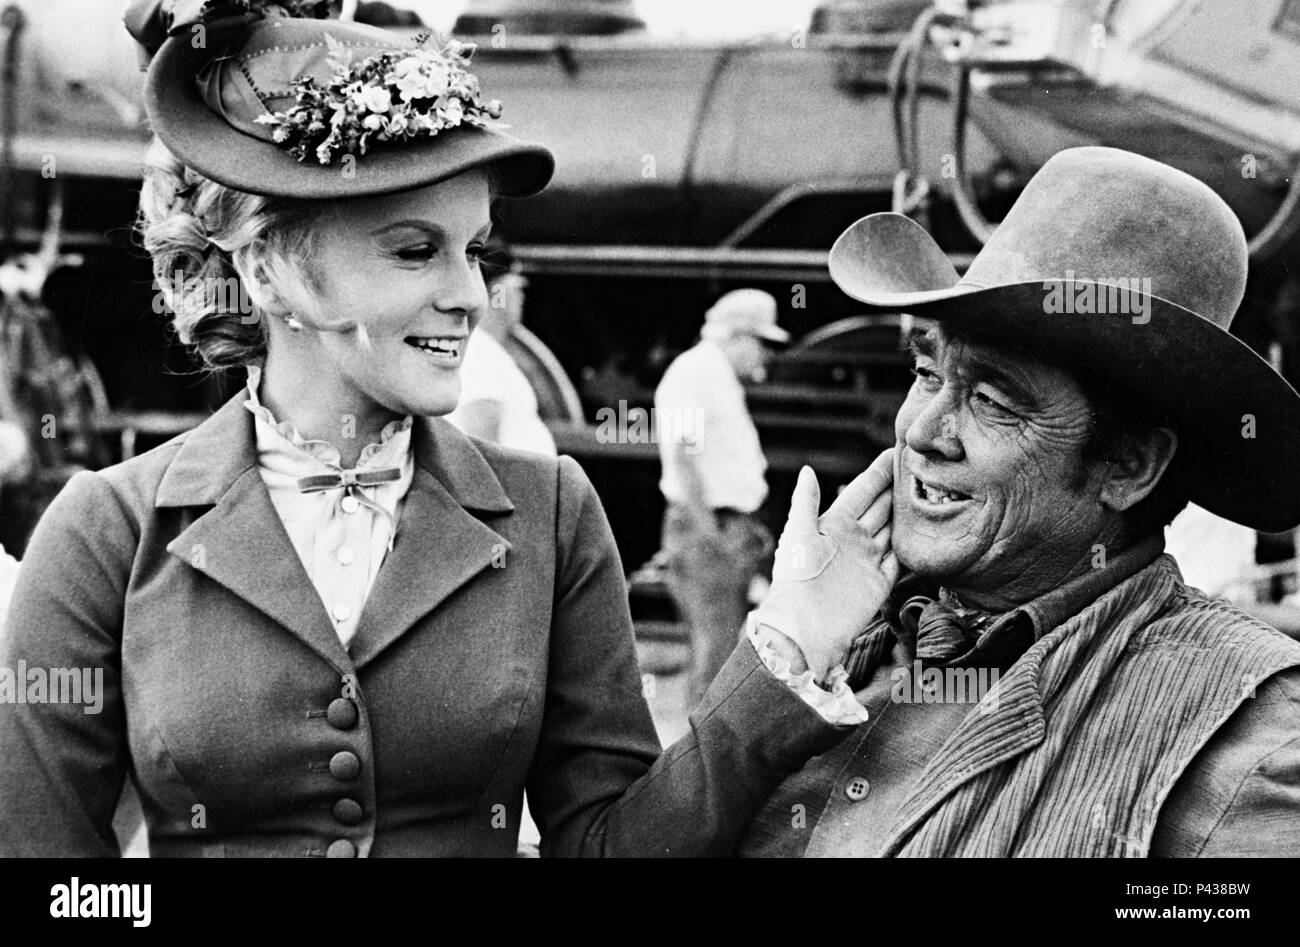 Original Film Title: THE TRAIN ROBBERS.  English Title: THE TRAIN ROBBERS.  Film Director: BURT KENNEDY.  Year: 1973.  Stars: BEN JOHNSON; ANN-MARGRET. Credit: WARNER BROTHERS / Album - Stock Image